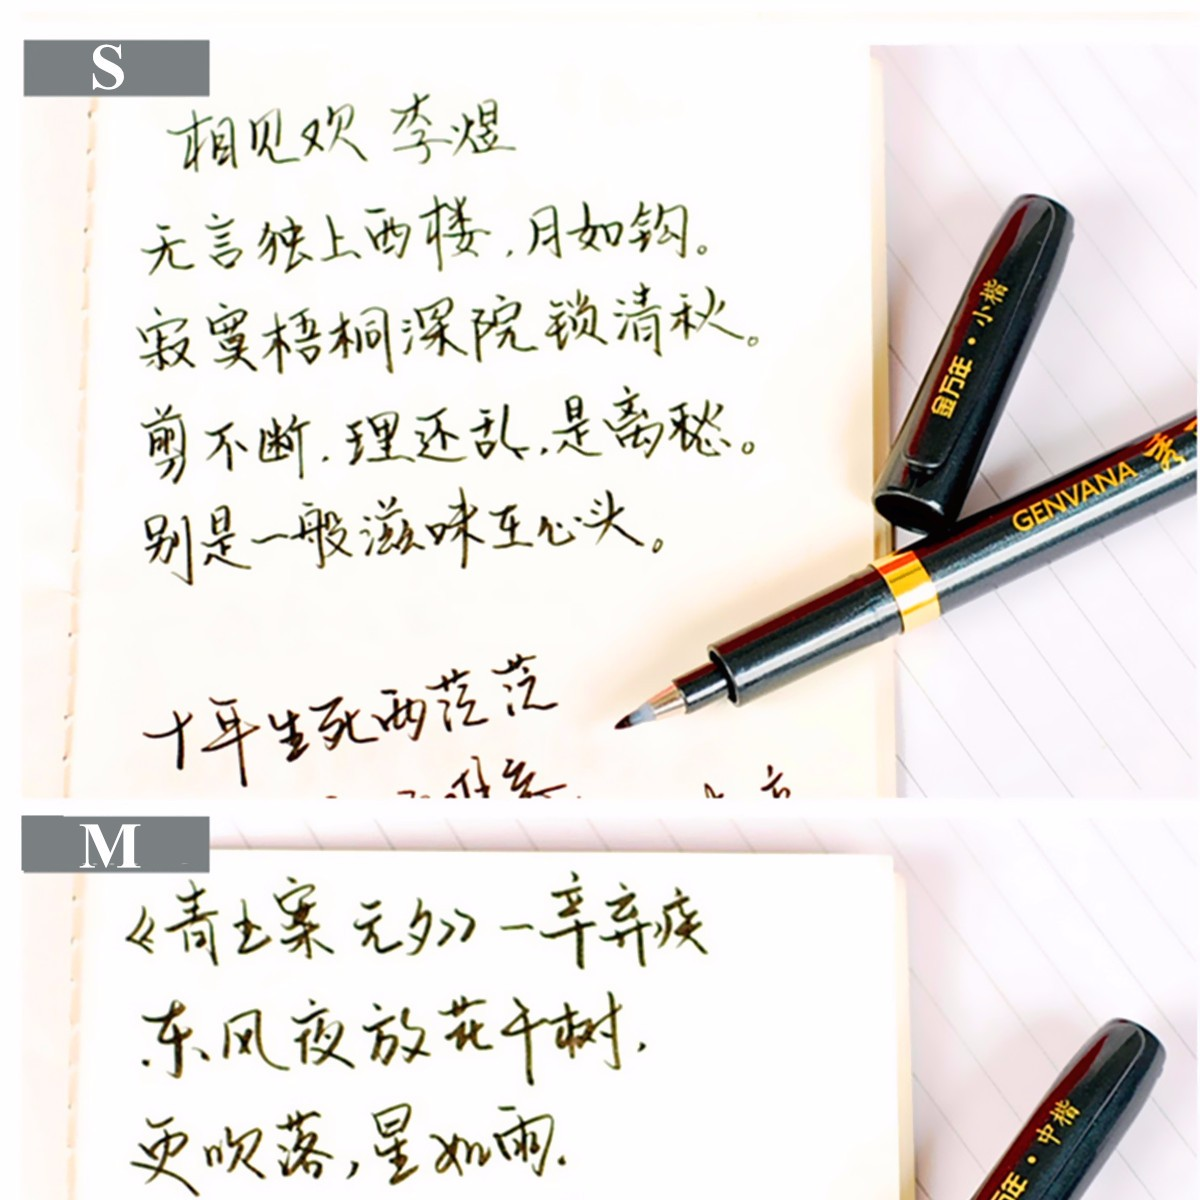 1Pcs Soft Brush Head Chinese Calligraphy Pen Writing Art Script Painting Brush Pen L/M/S Three Size